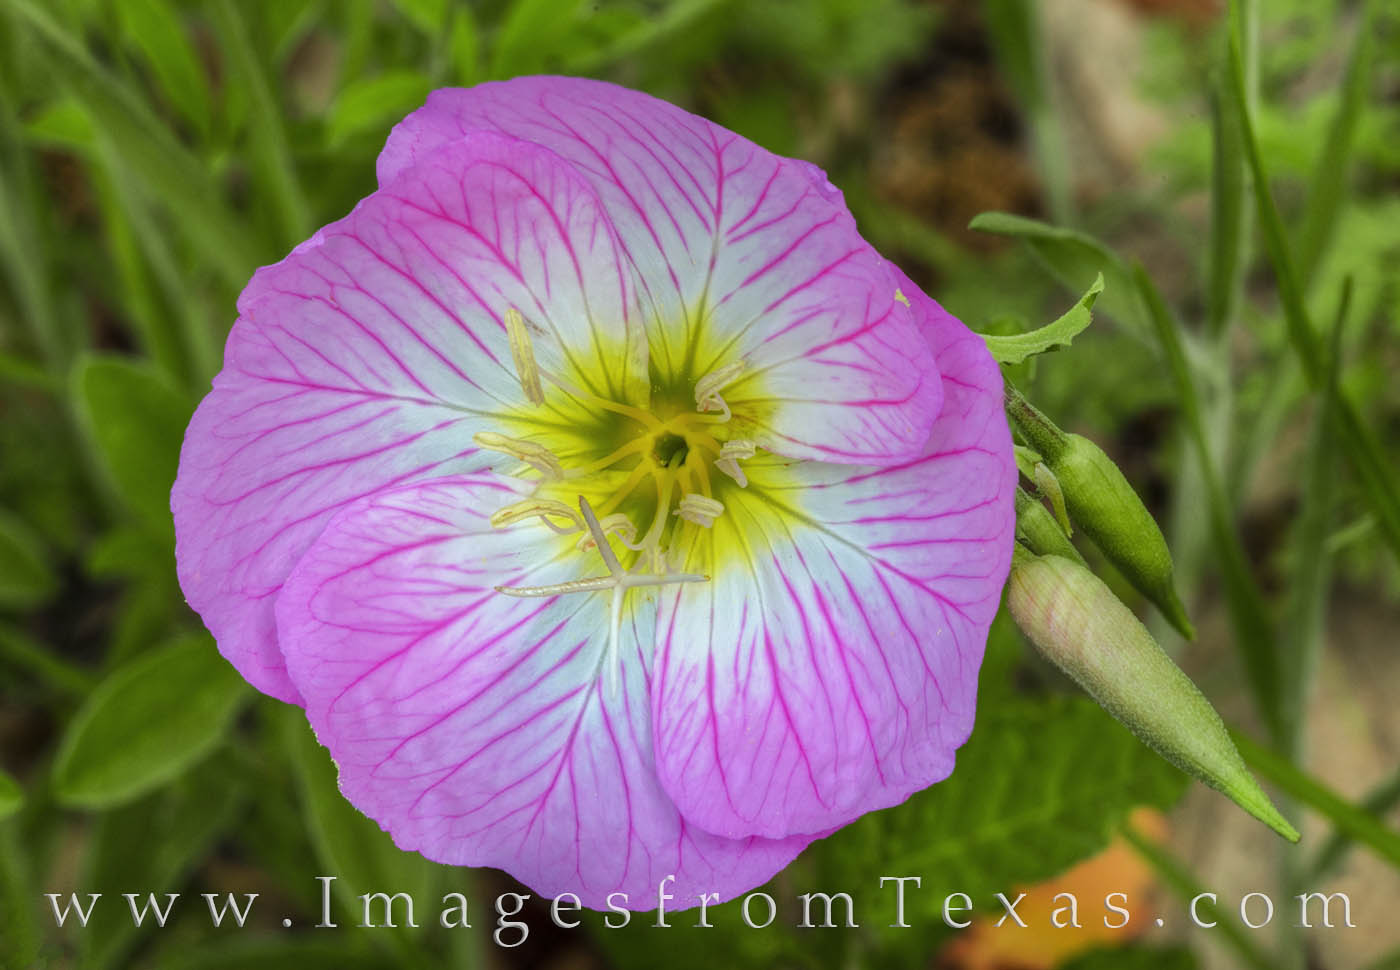 Known as Pink Evening Primrose, along with other common names such as Showy Evening Primrose, Pinkladies,  and Buttercups, these...